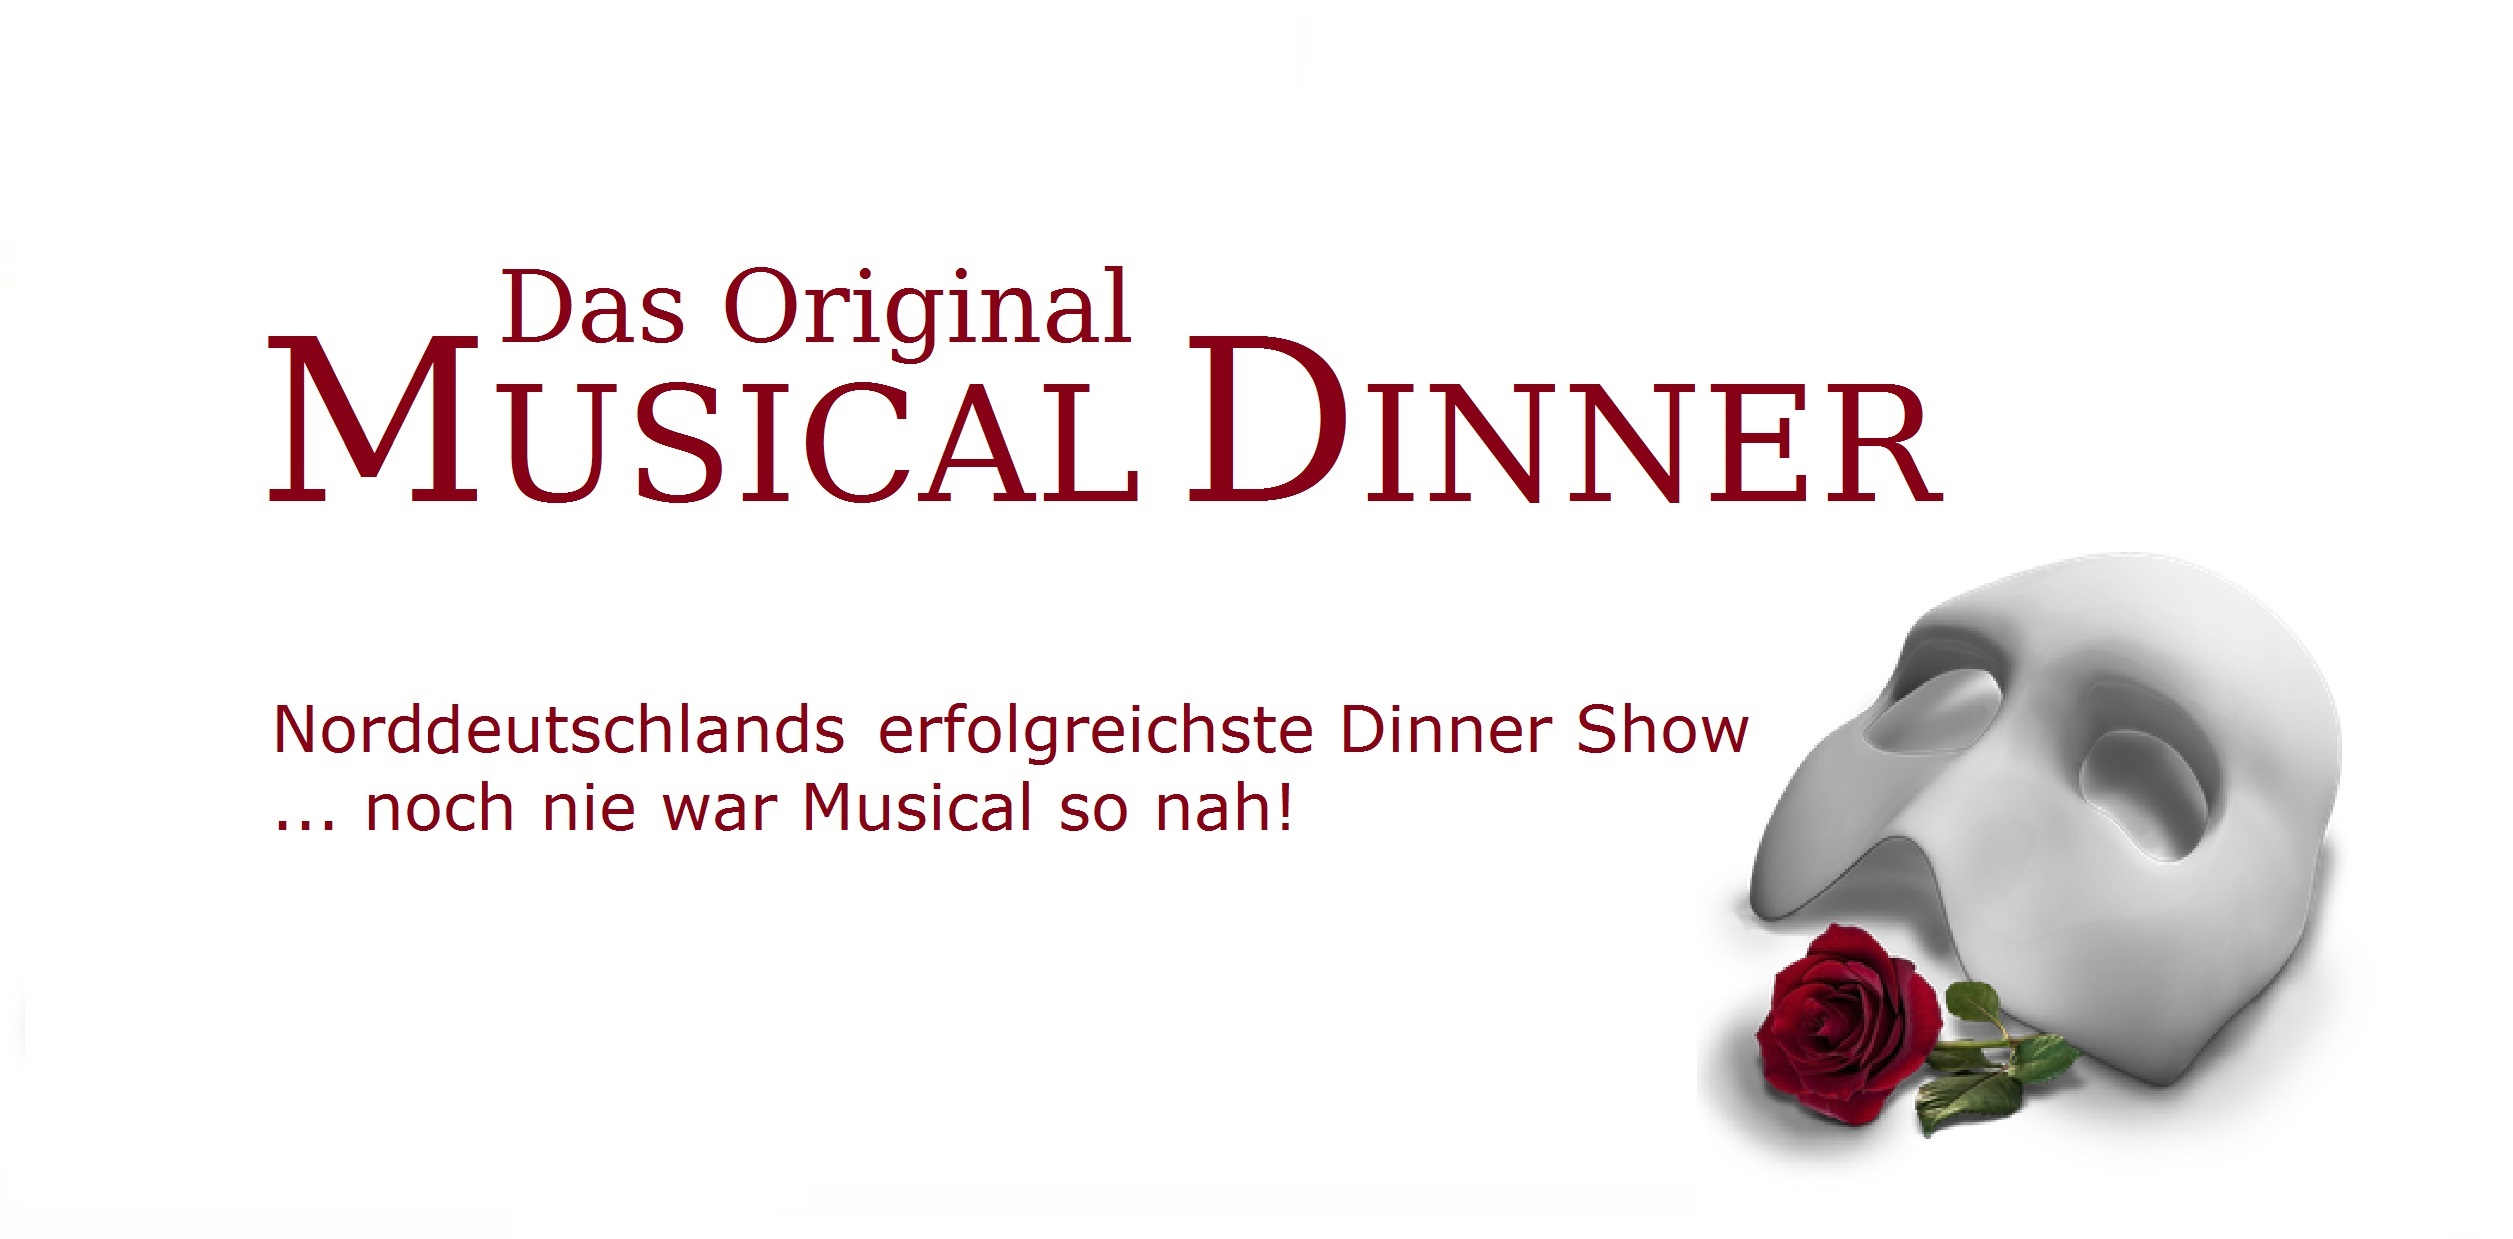 musical-dinner-das-original_1